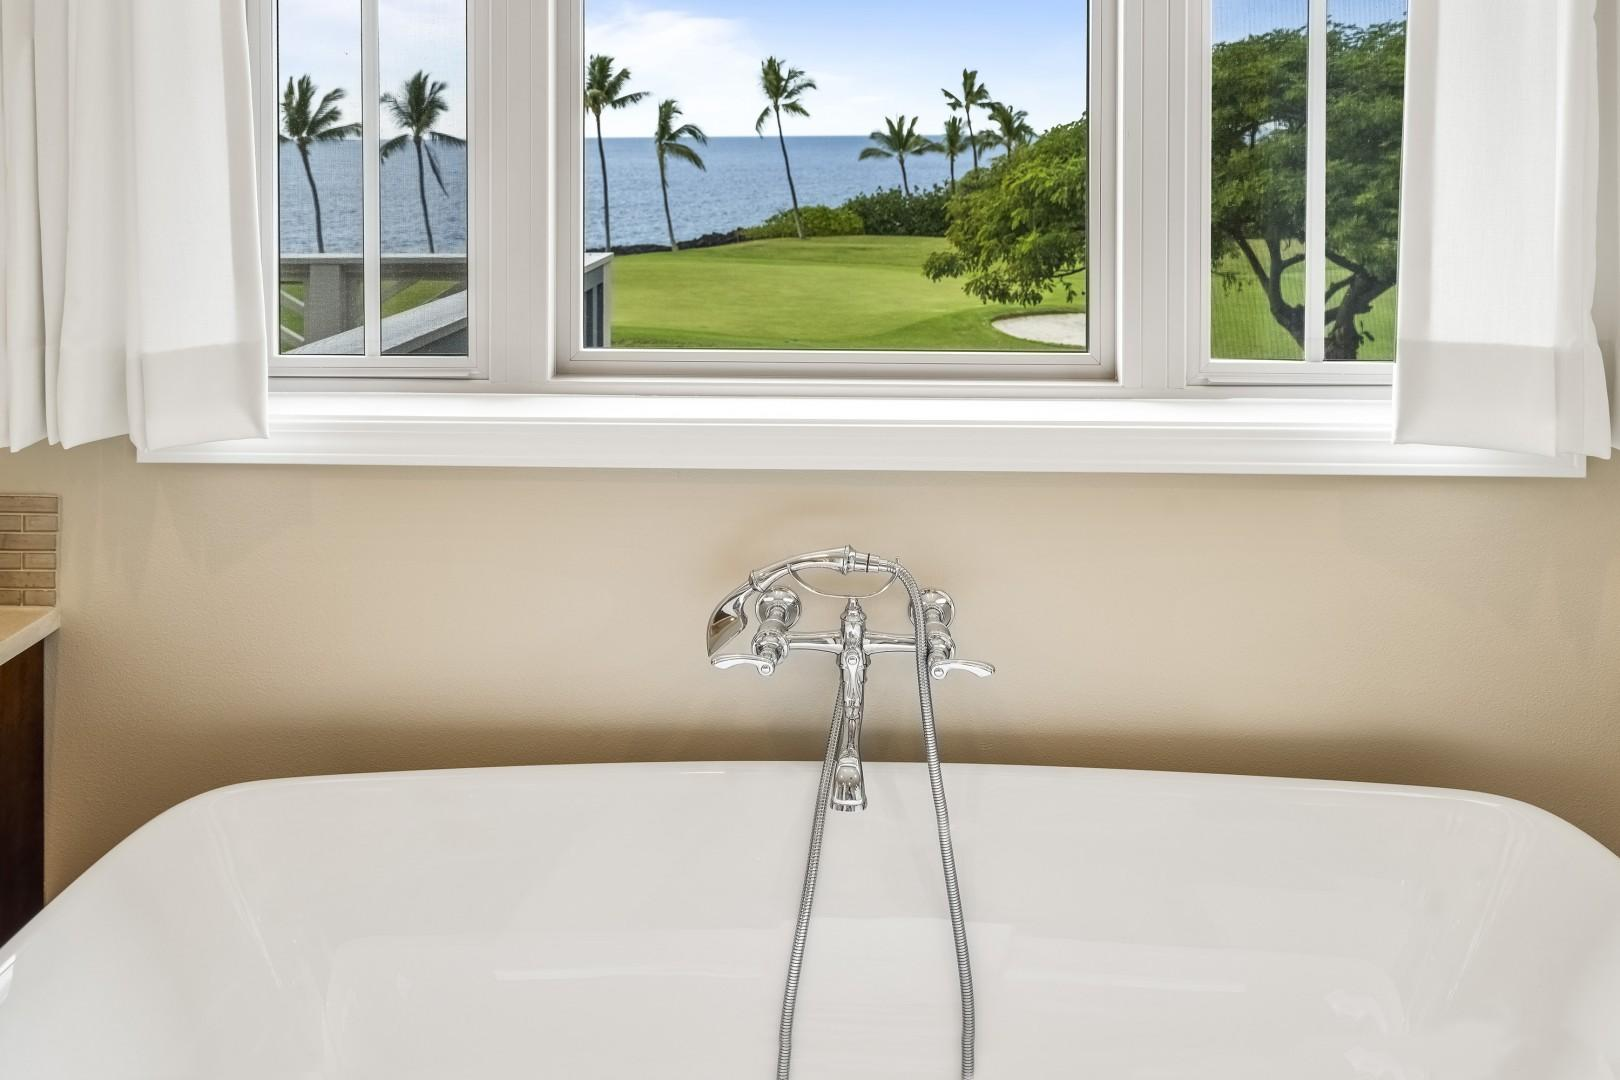 Take in the ocean views from the large soaking tub!